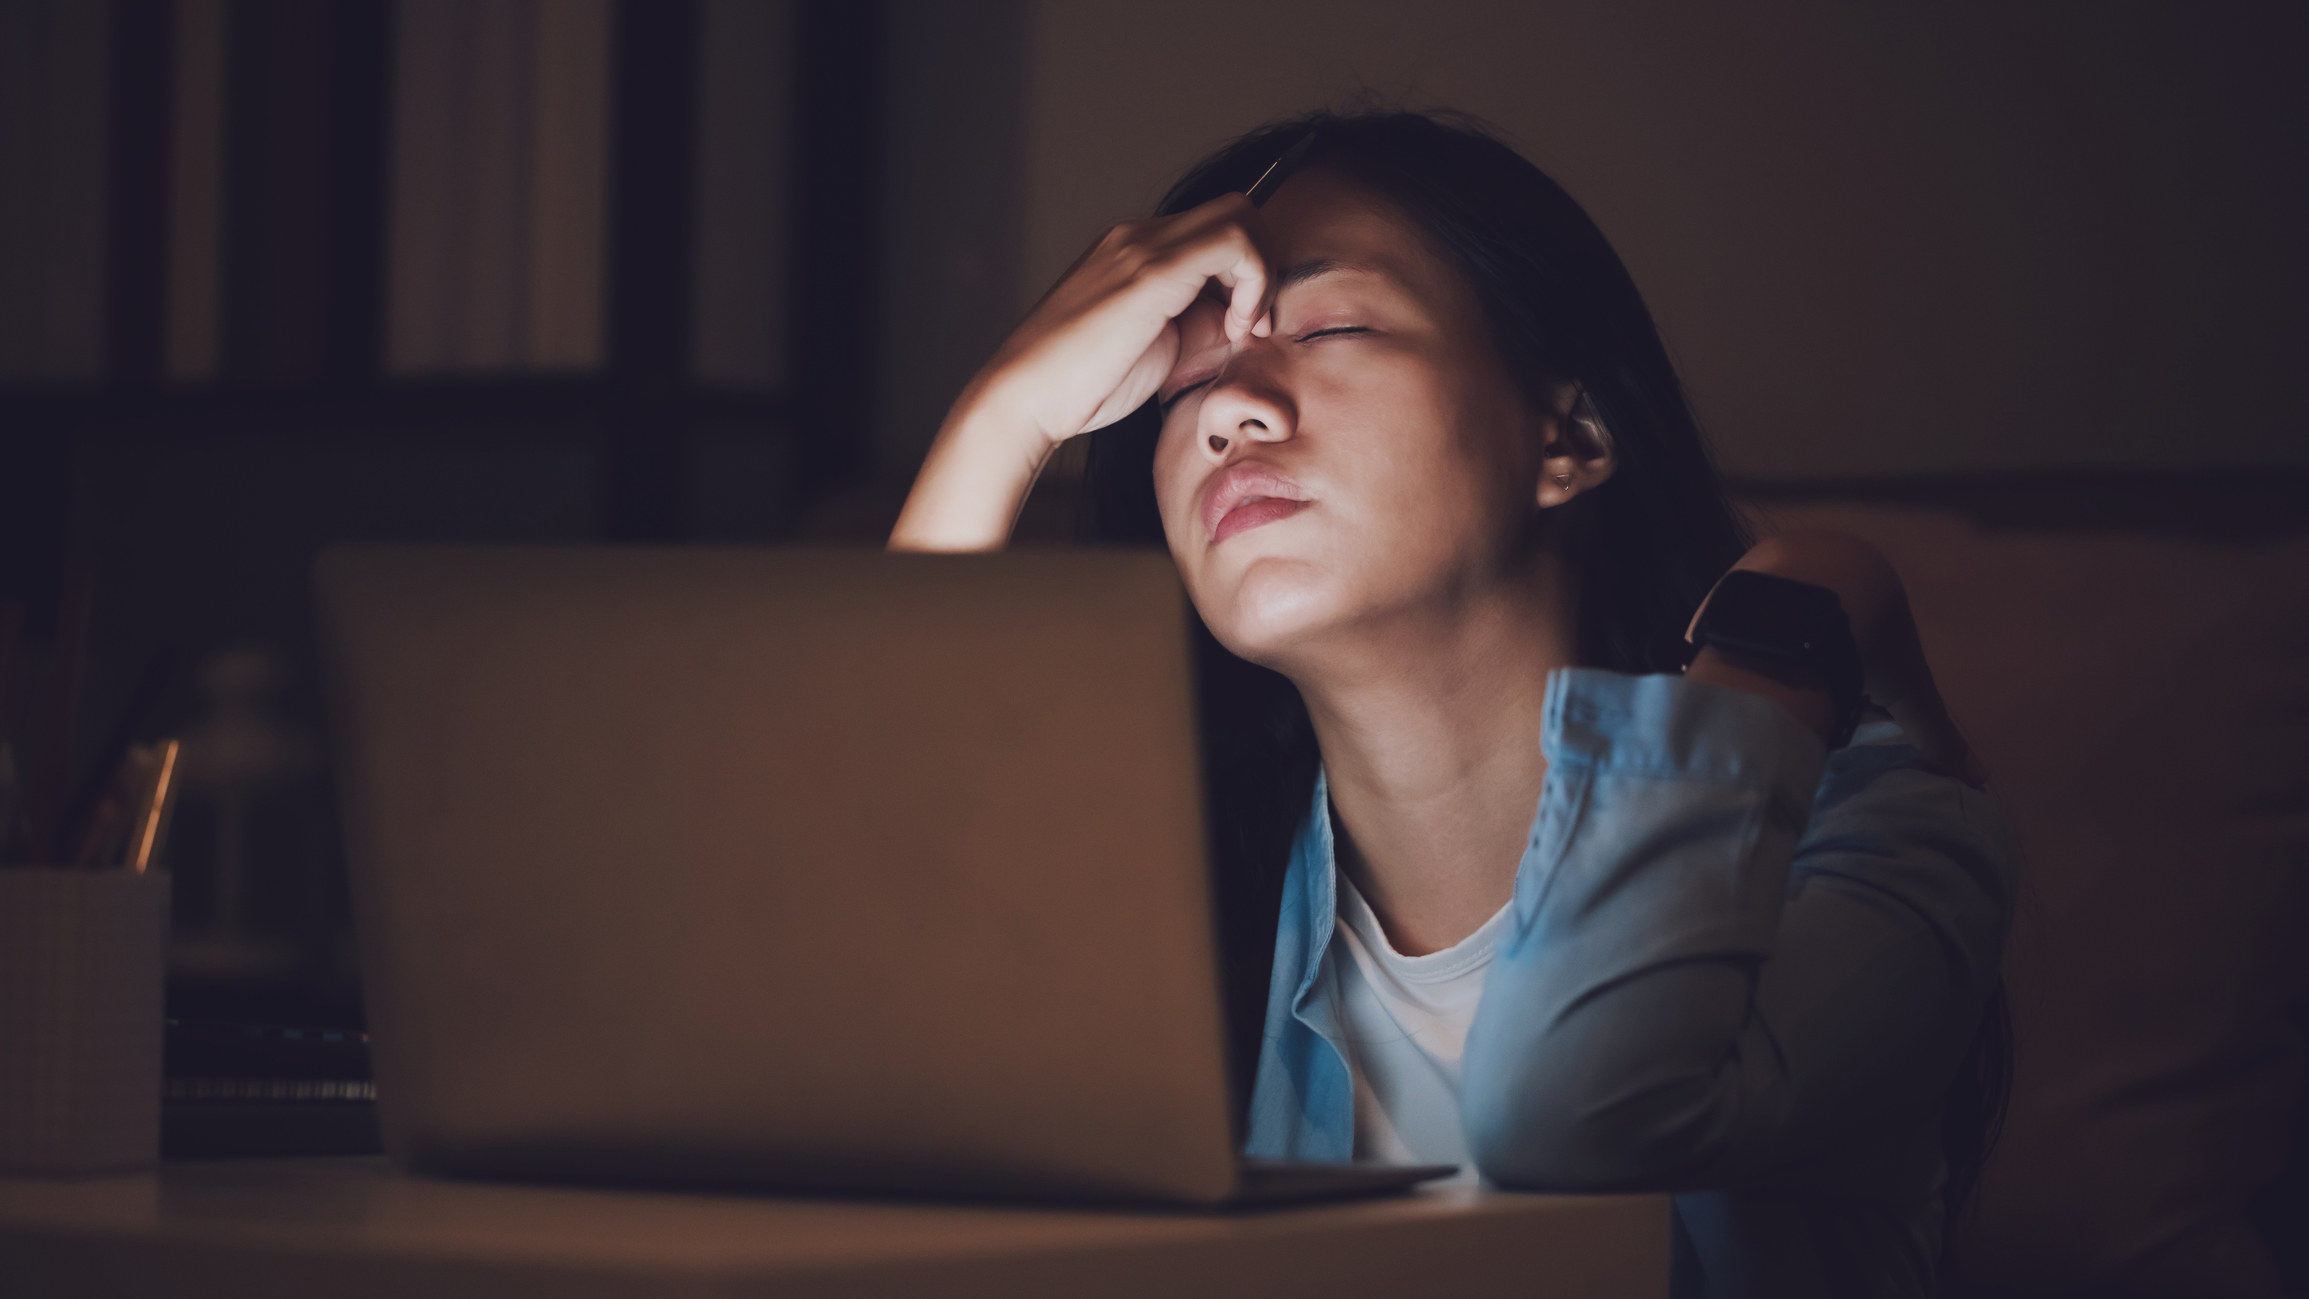 Woman sitting tiredly behind her computer